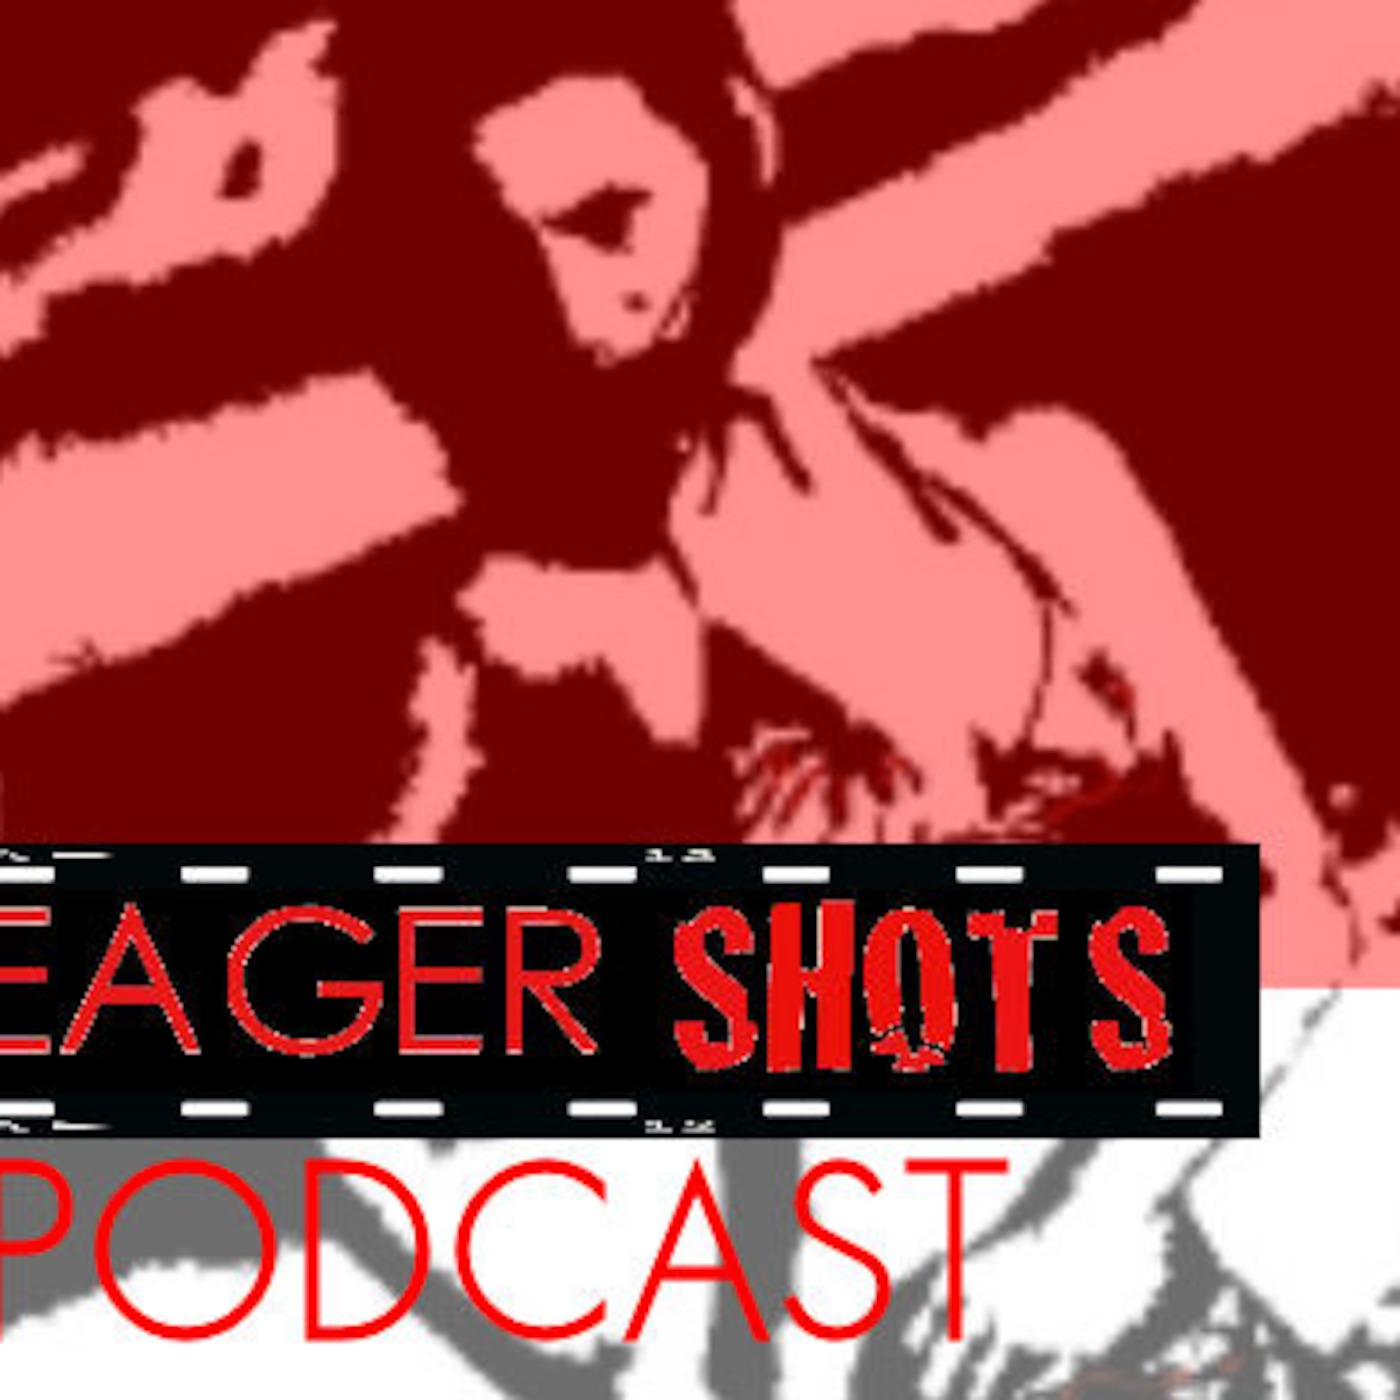 Yeager Shots Podcast